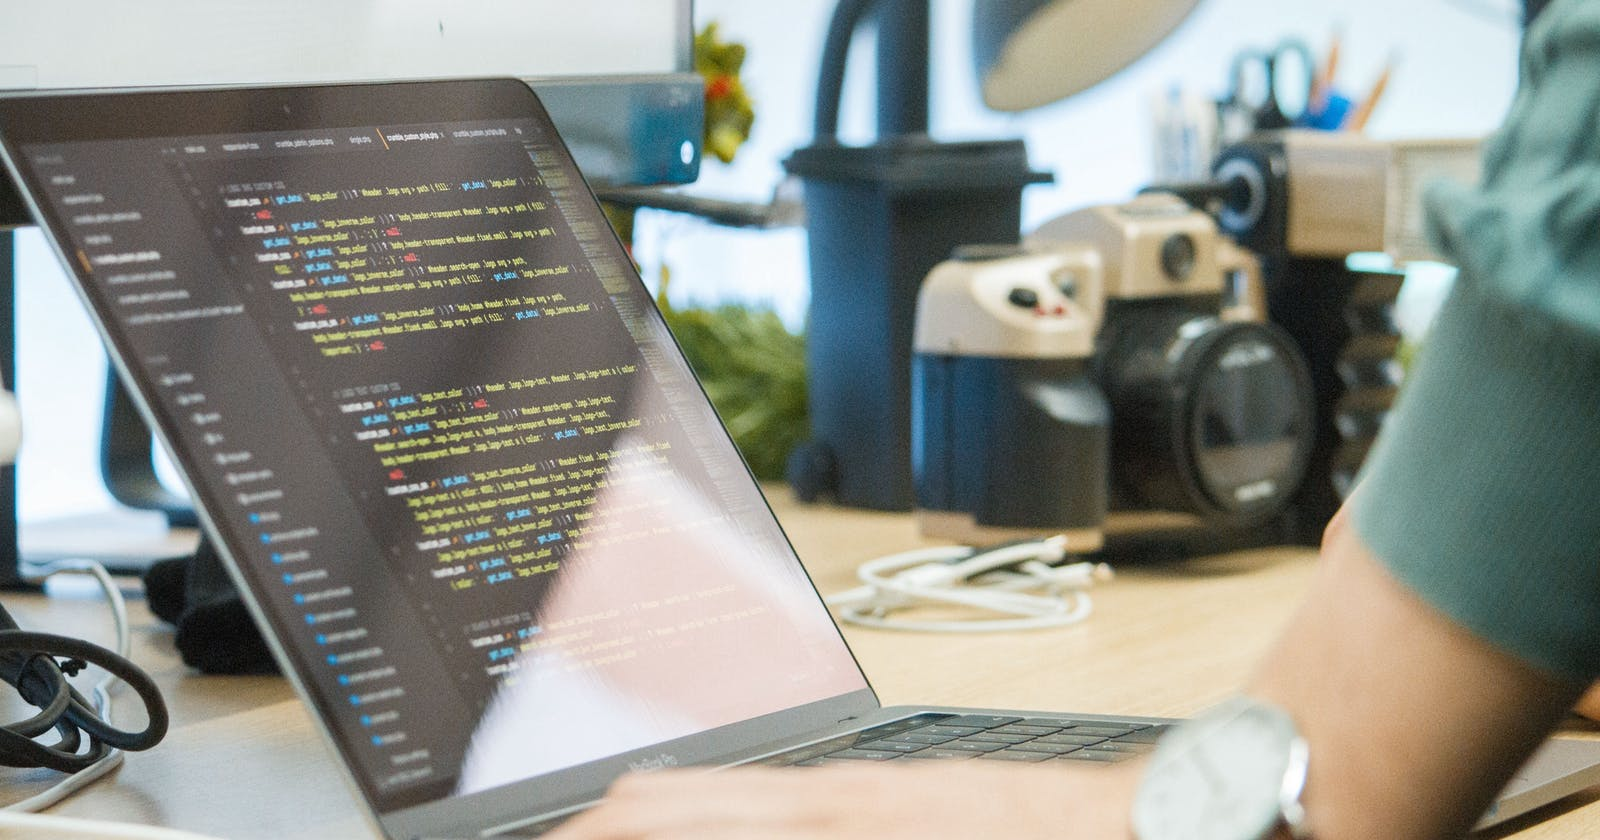 6 Things Programmers Can Learn From Writers